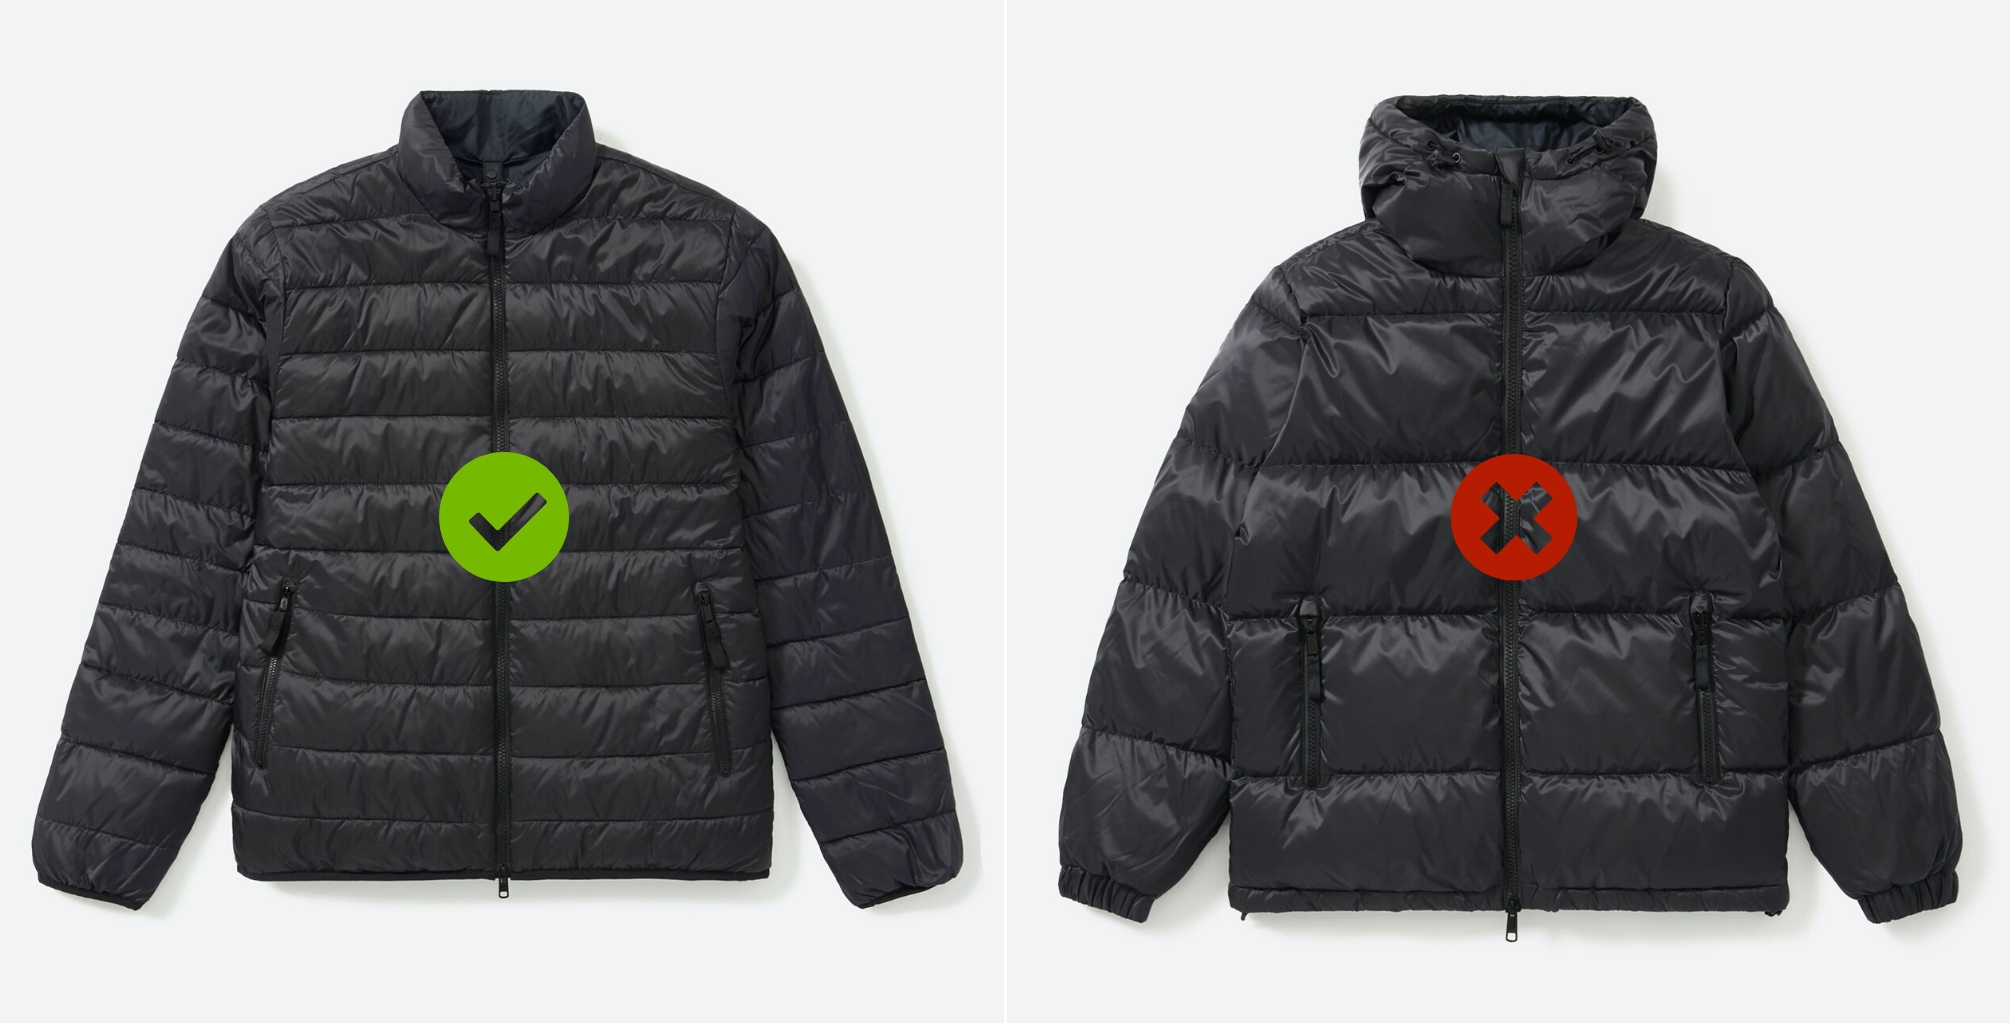 Scale of puffer jacket